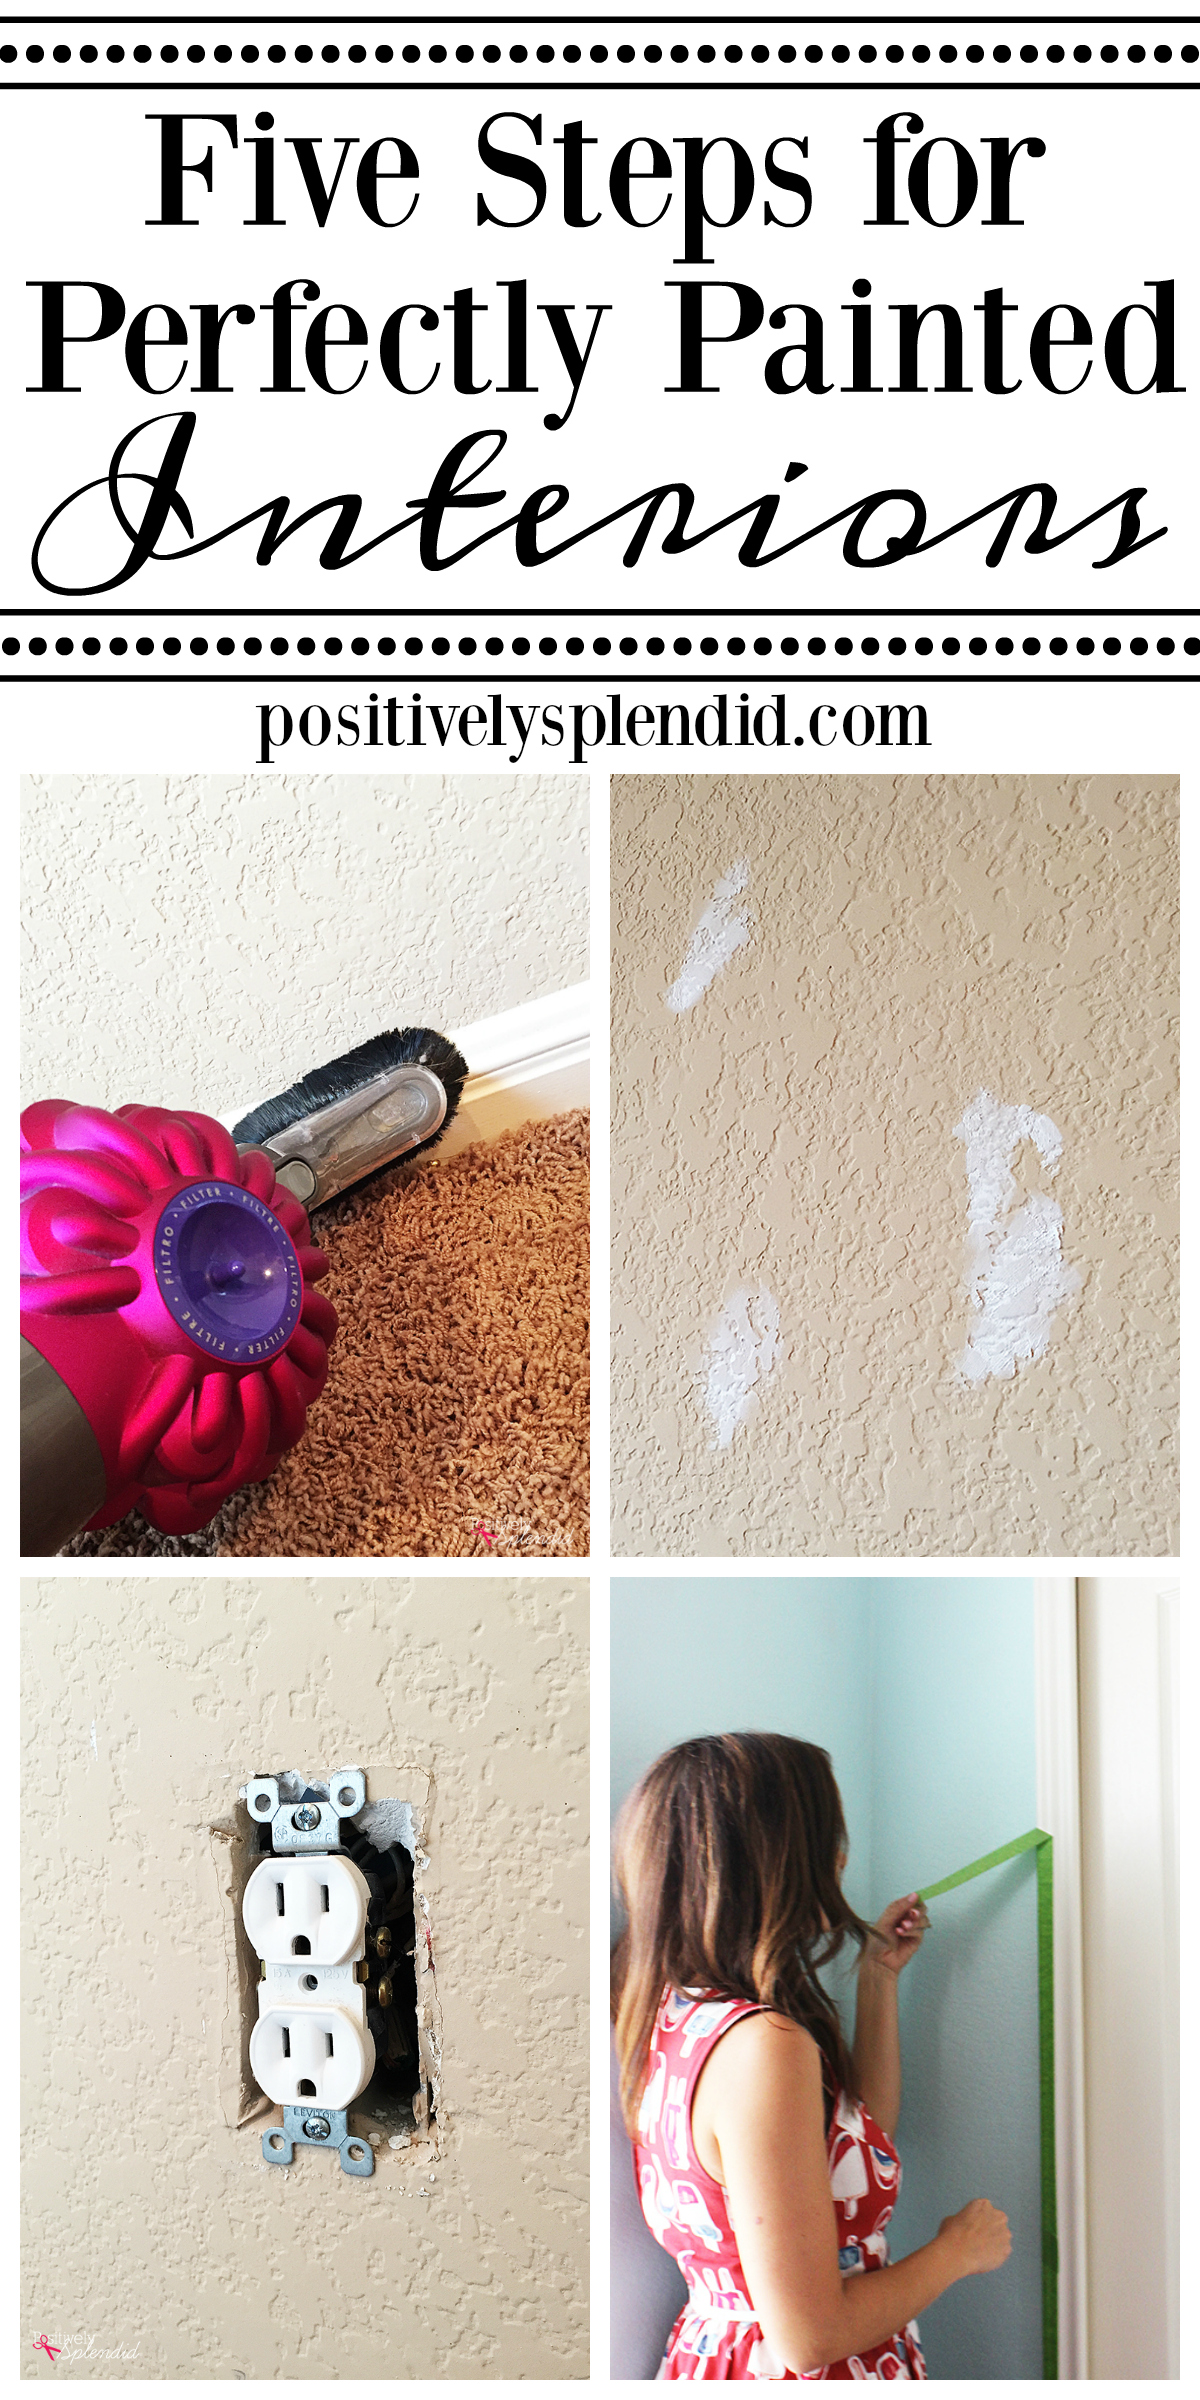 5 Tips for Perfectly Painted Interiors. Great information for DIYers!